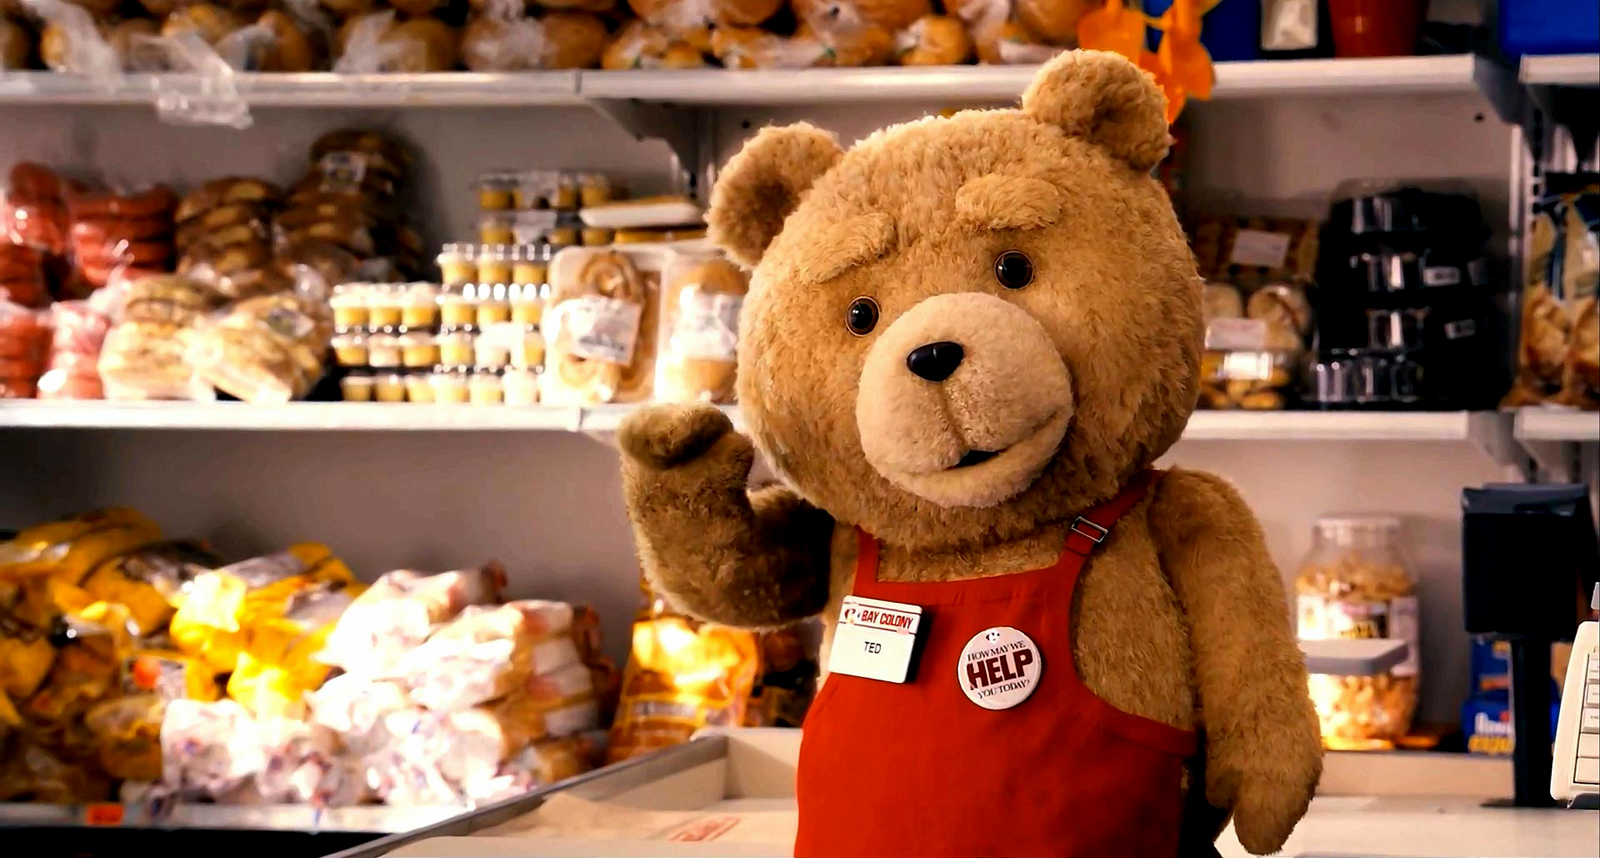 Teddy_Bear_Ted_Movie_HD_Wallpaper-Vvallpaper.Net